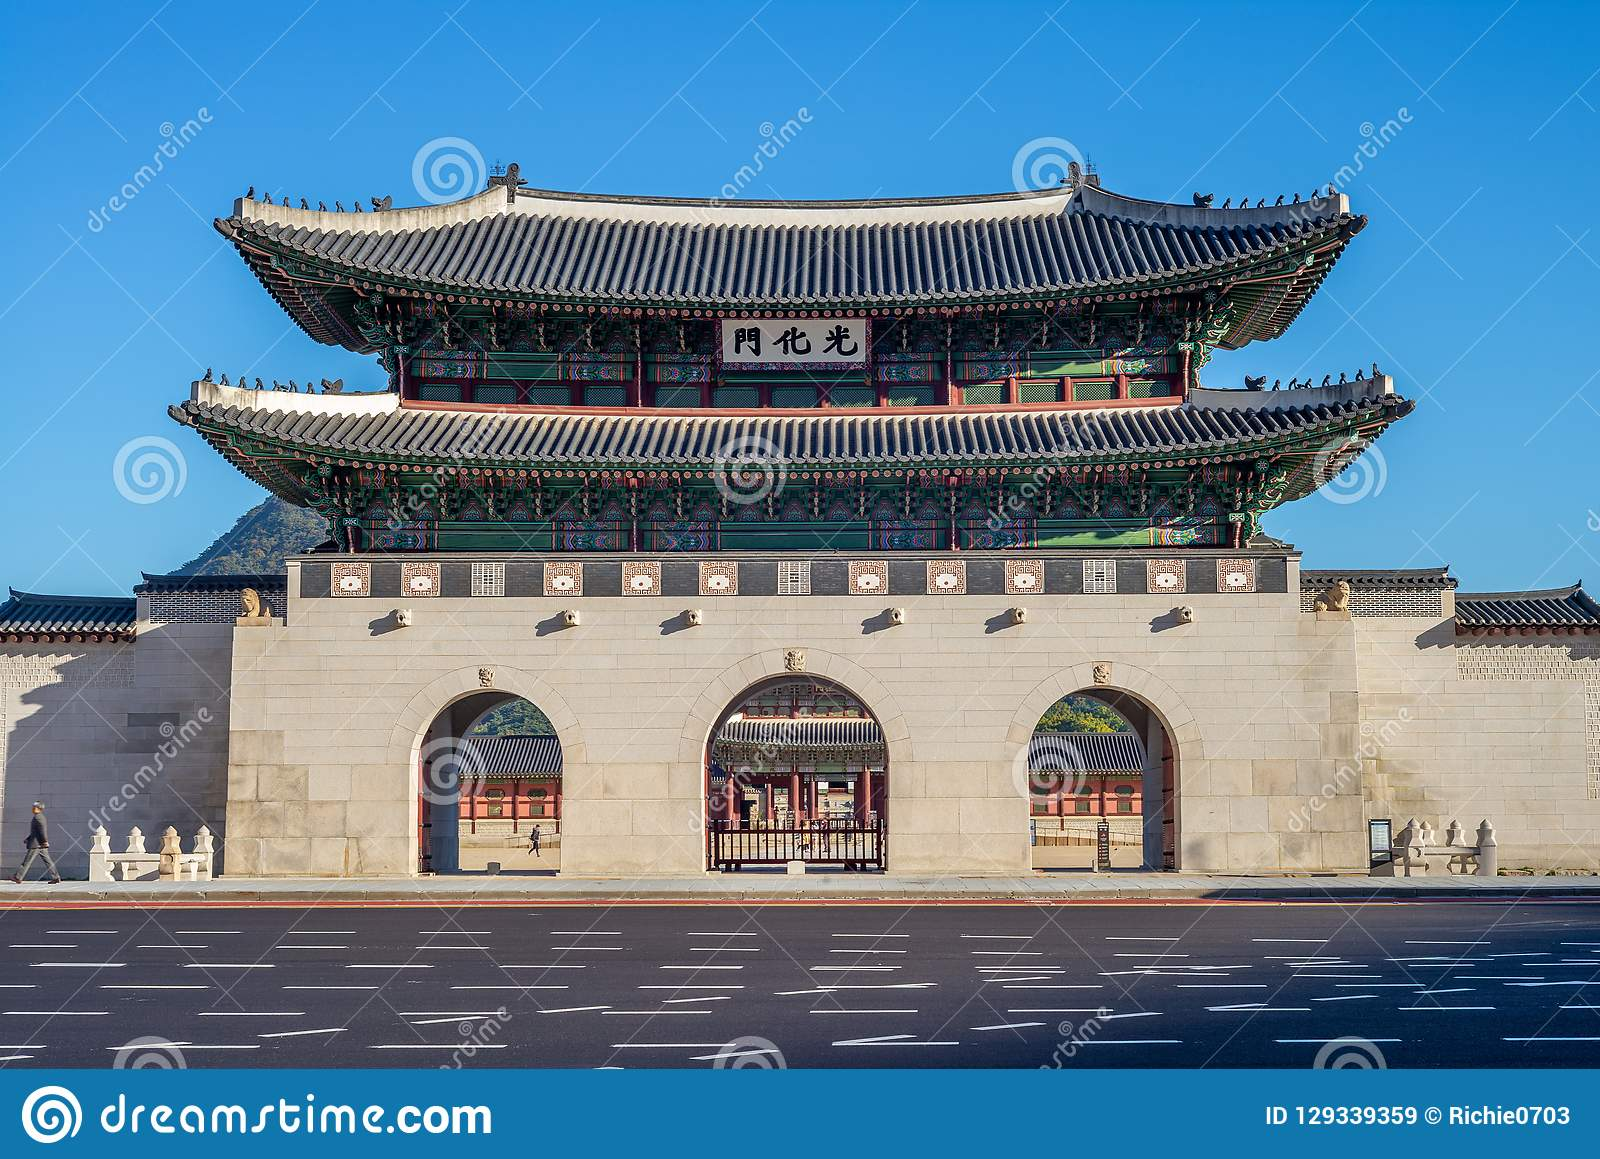 Gwanghwamun, main gate of Gyeongbokgung Palace